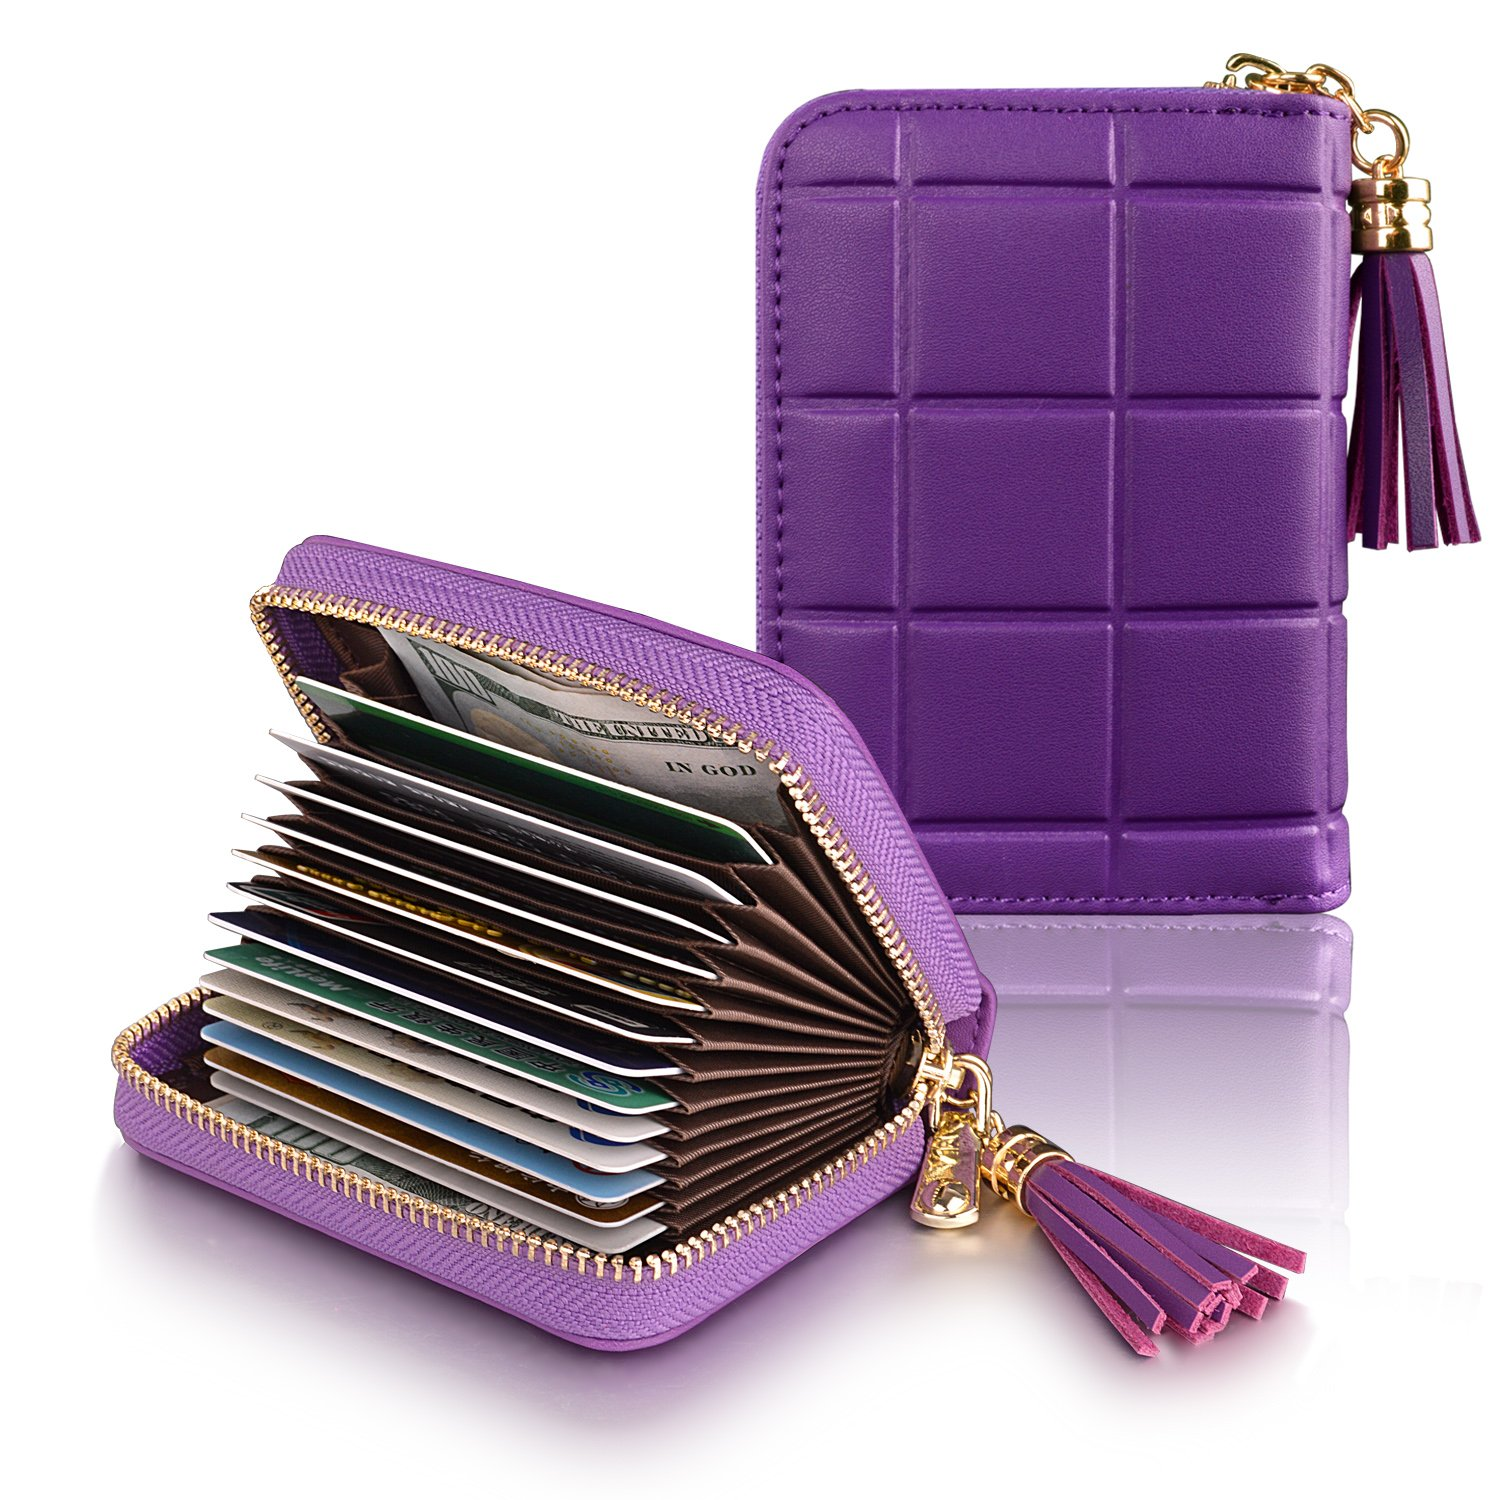 Accordion Zipper Wallet for Women Genuine Leather Card Holder RFID Blocking Wallet Small Wallet for Coin Purse Purple